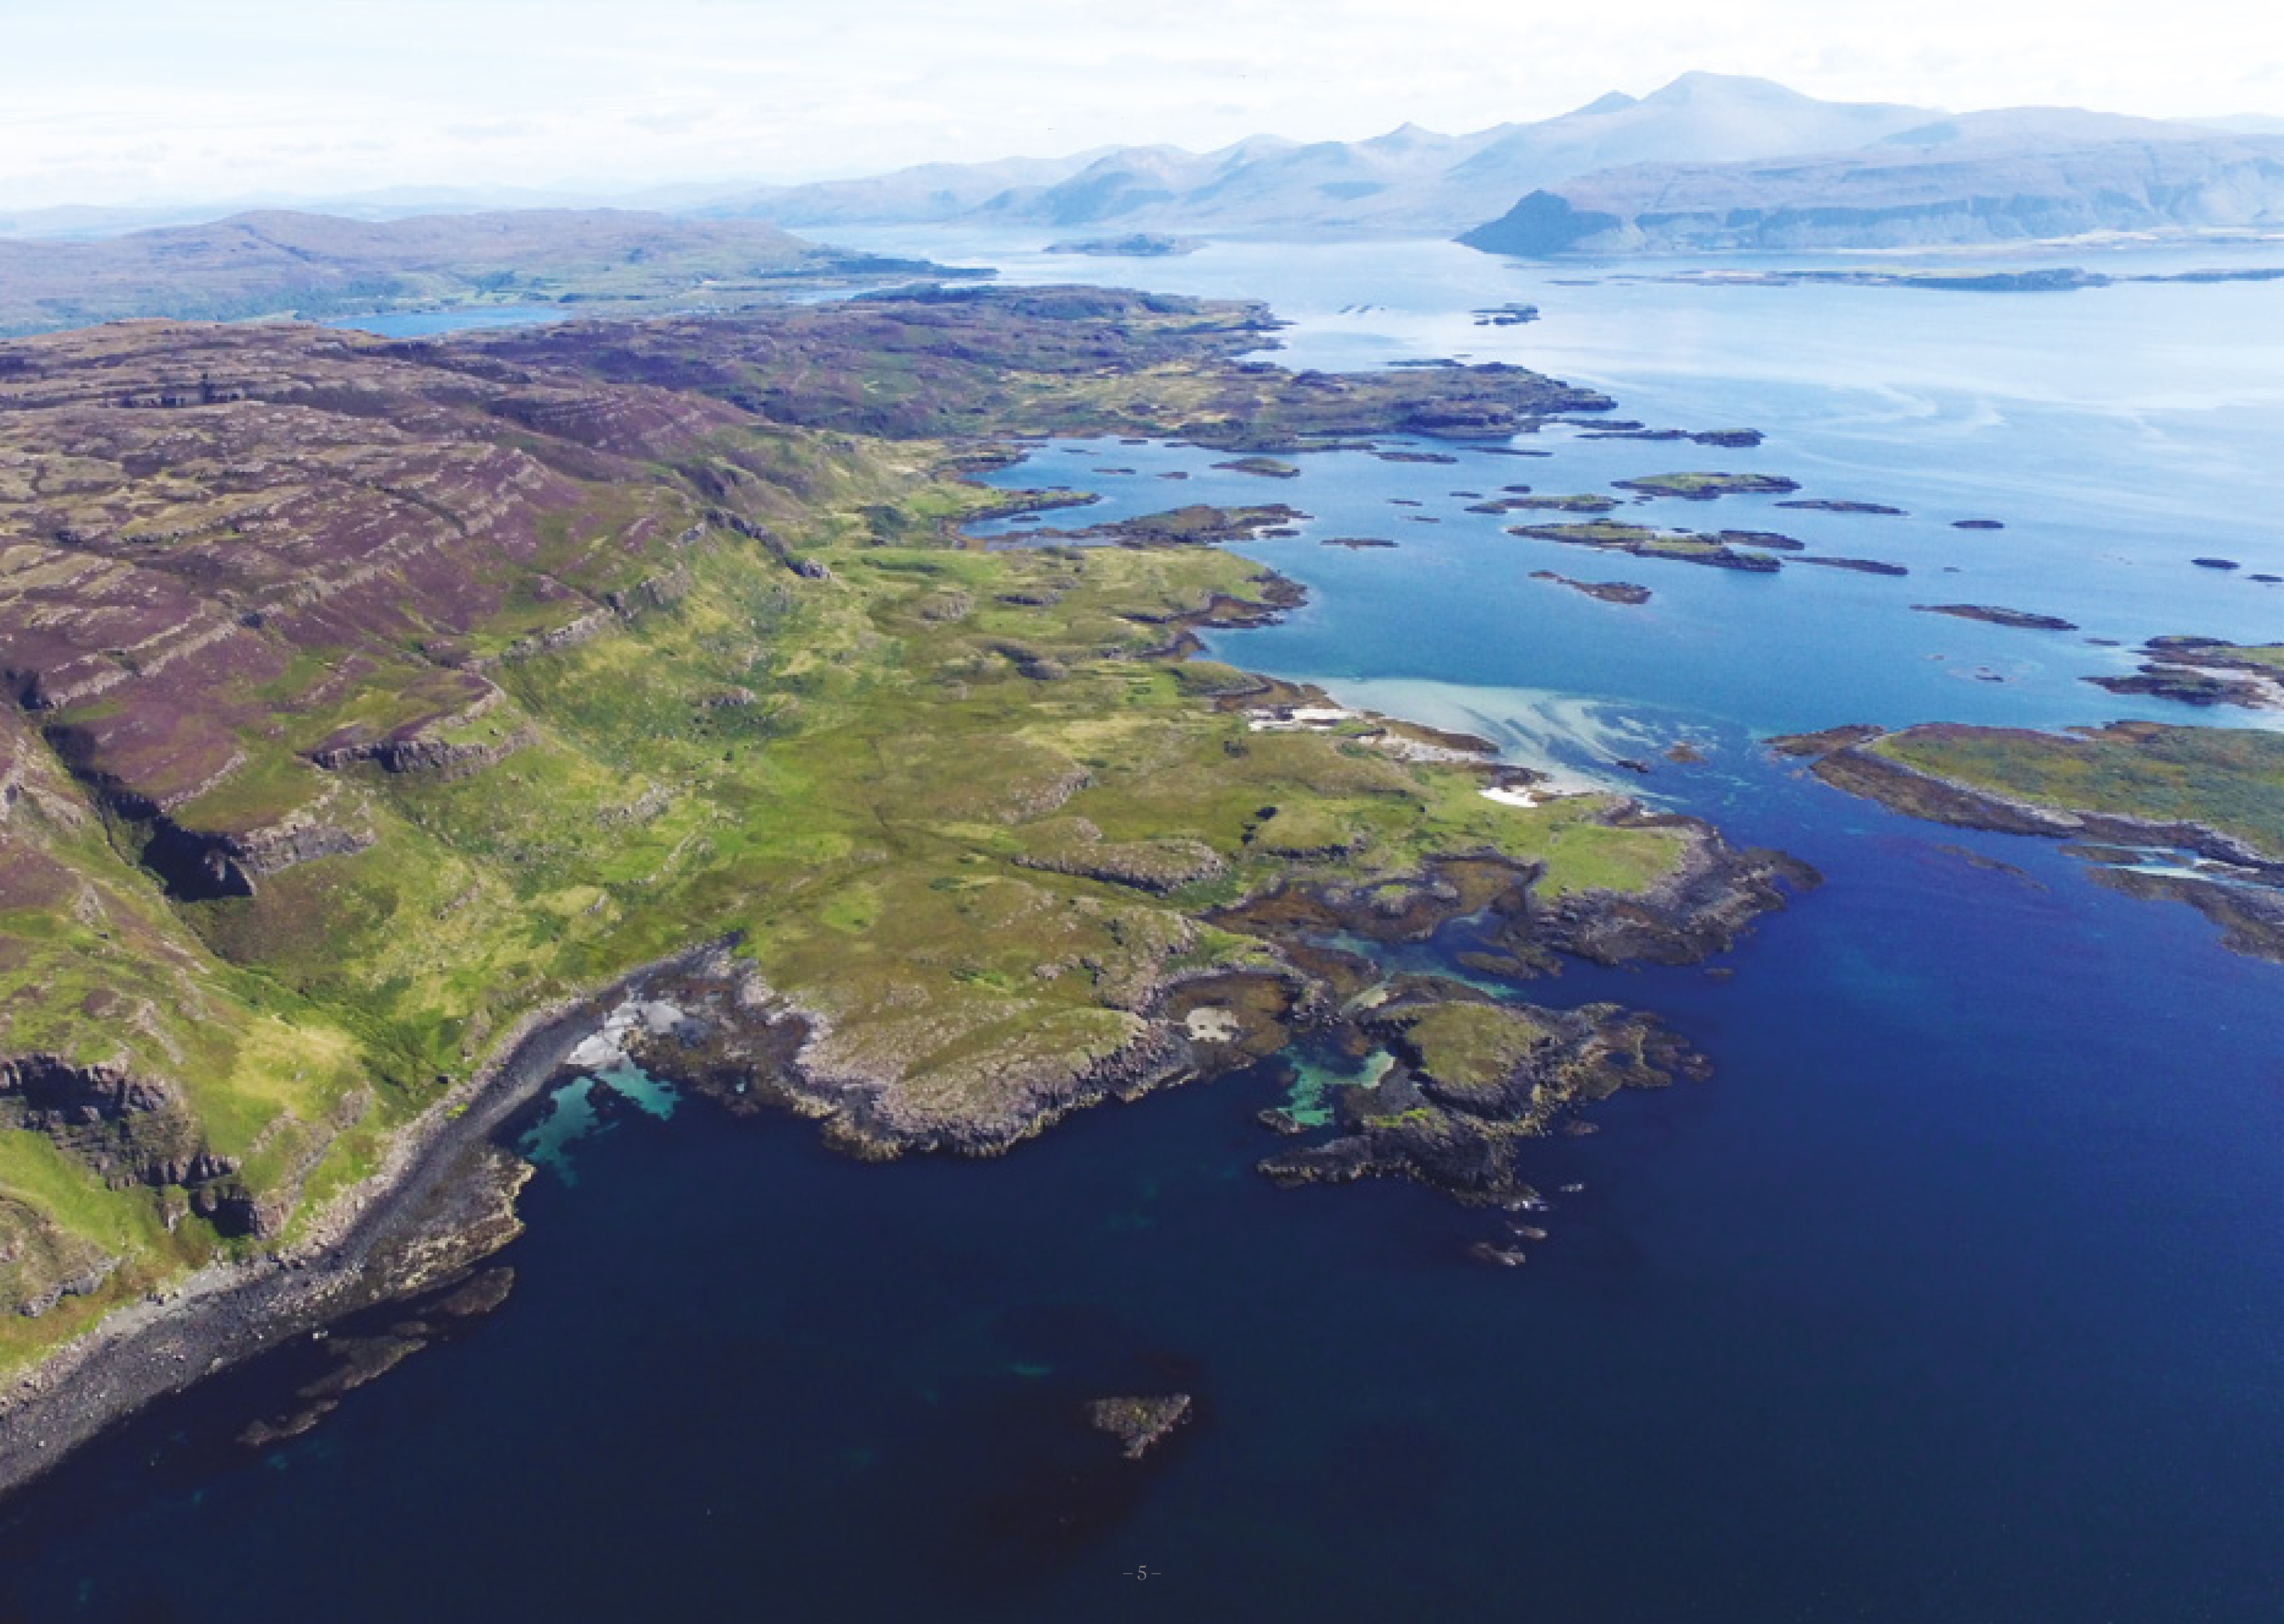 The bid to buy Ulva was launched about a year ago when Mr Howard decided to put the estate on the market